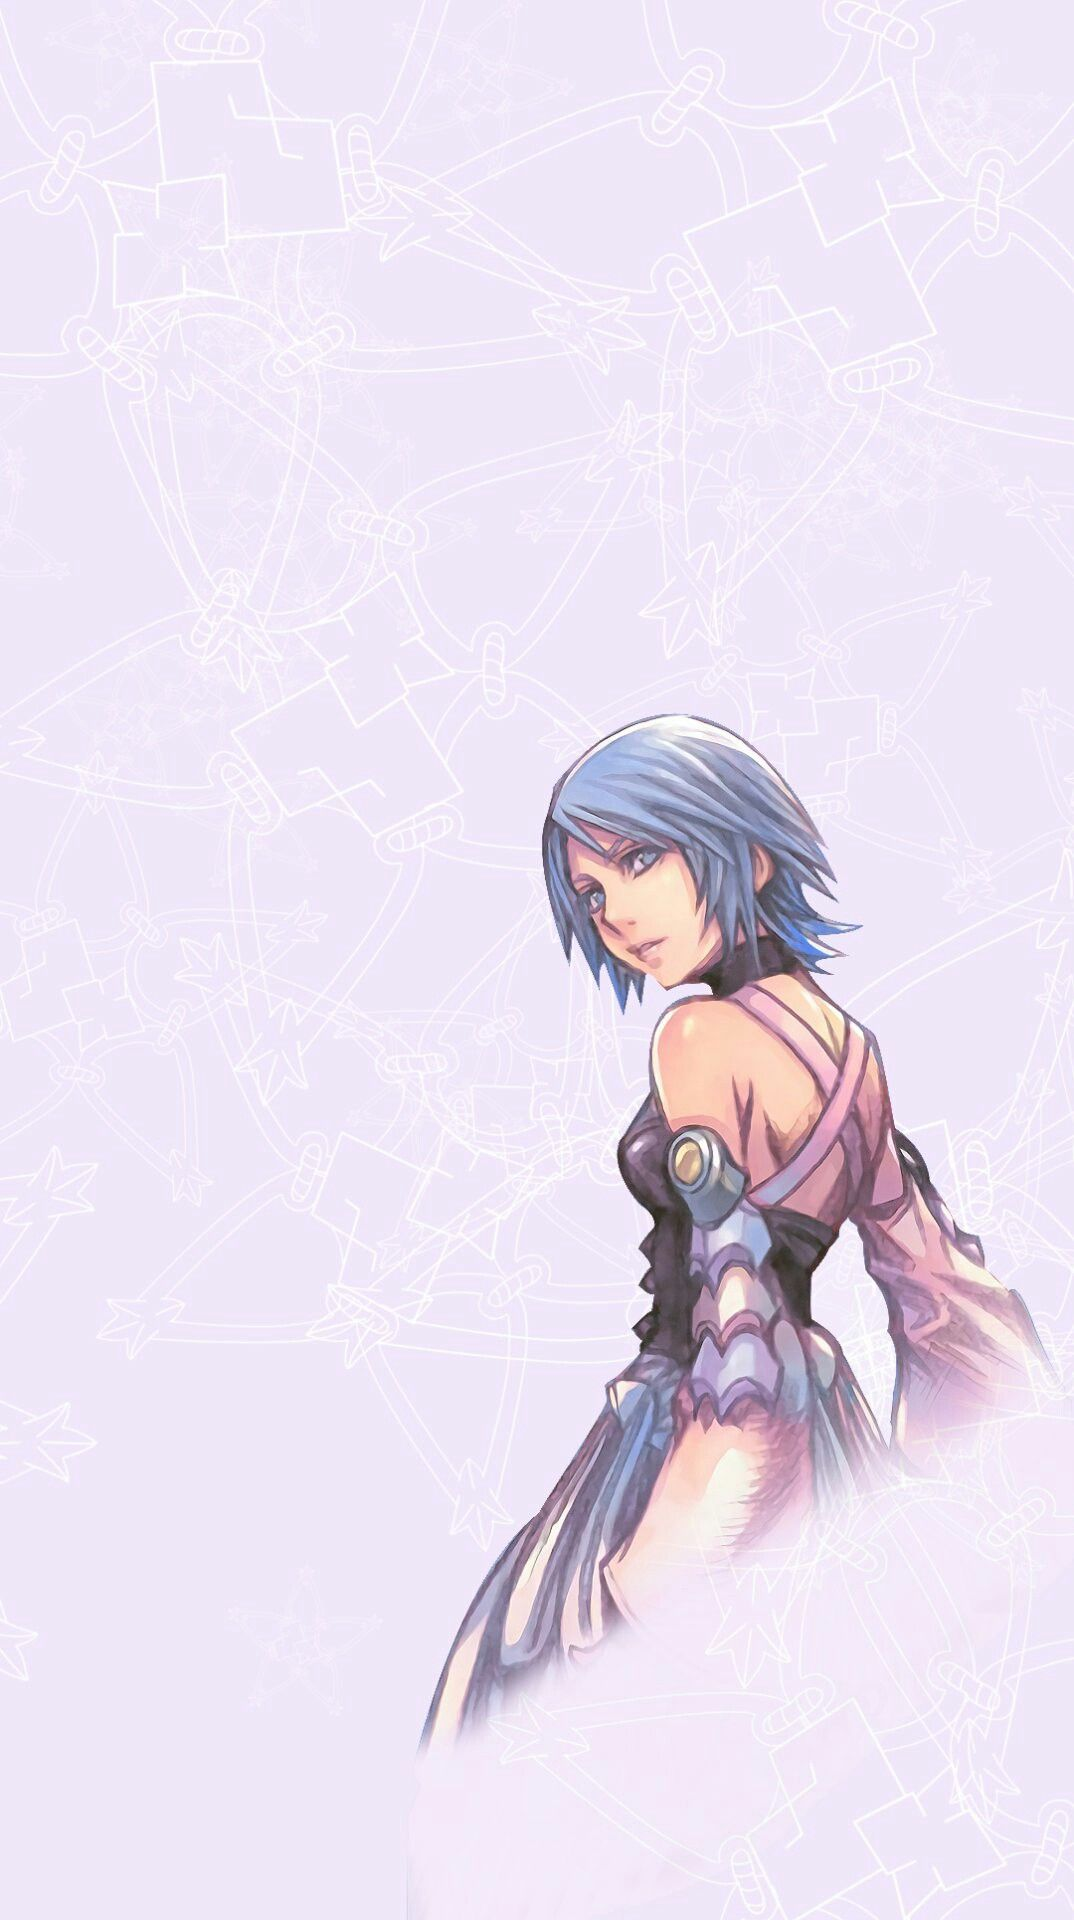 Aqua Kingdom Hearts Kingdom Hearts Wallpaper Kingdom Hearts Fanart Kingdom Hearts Art